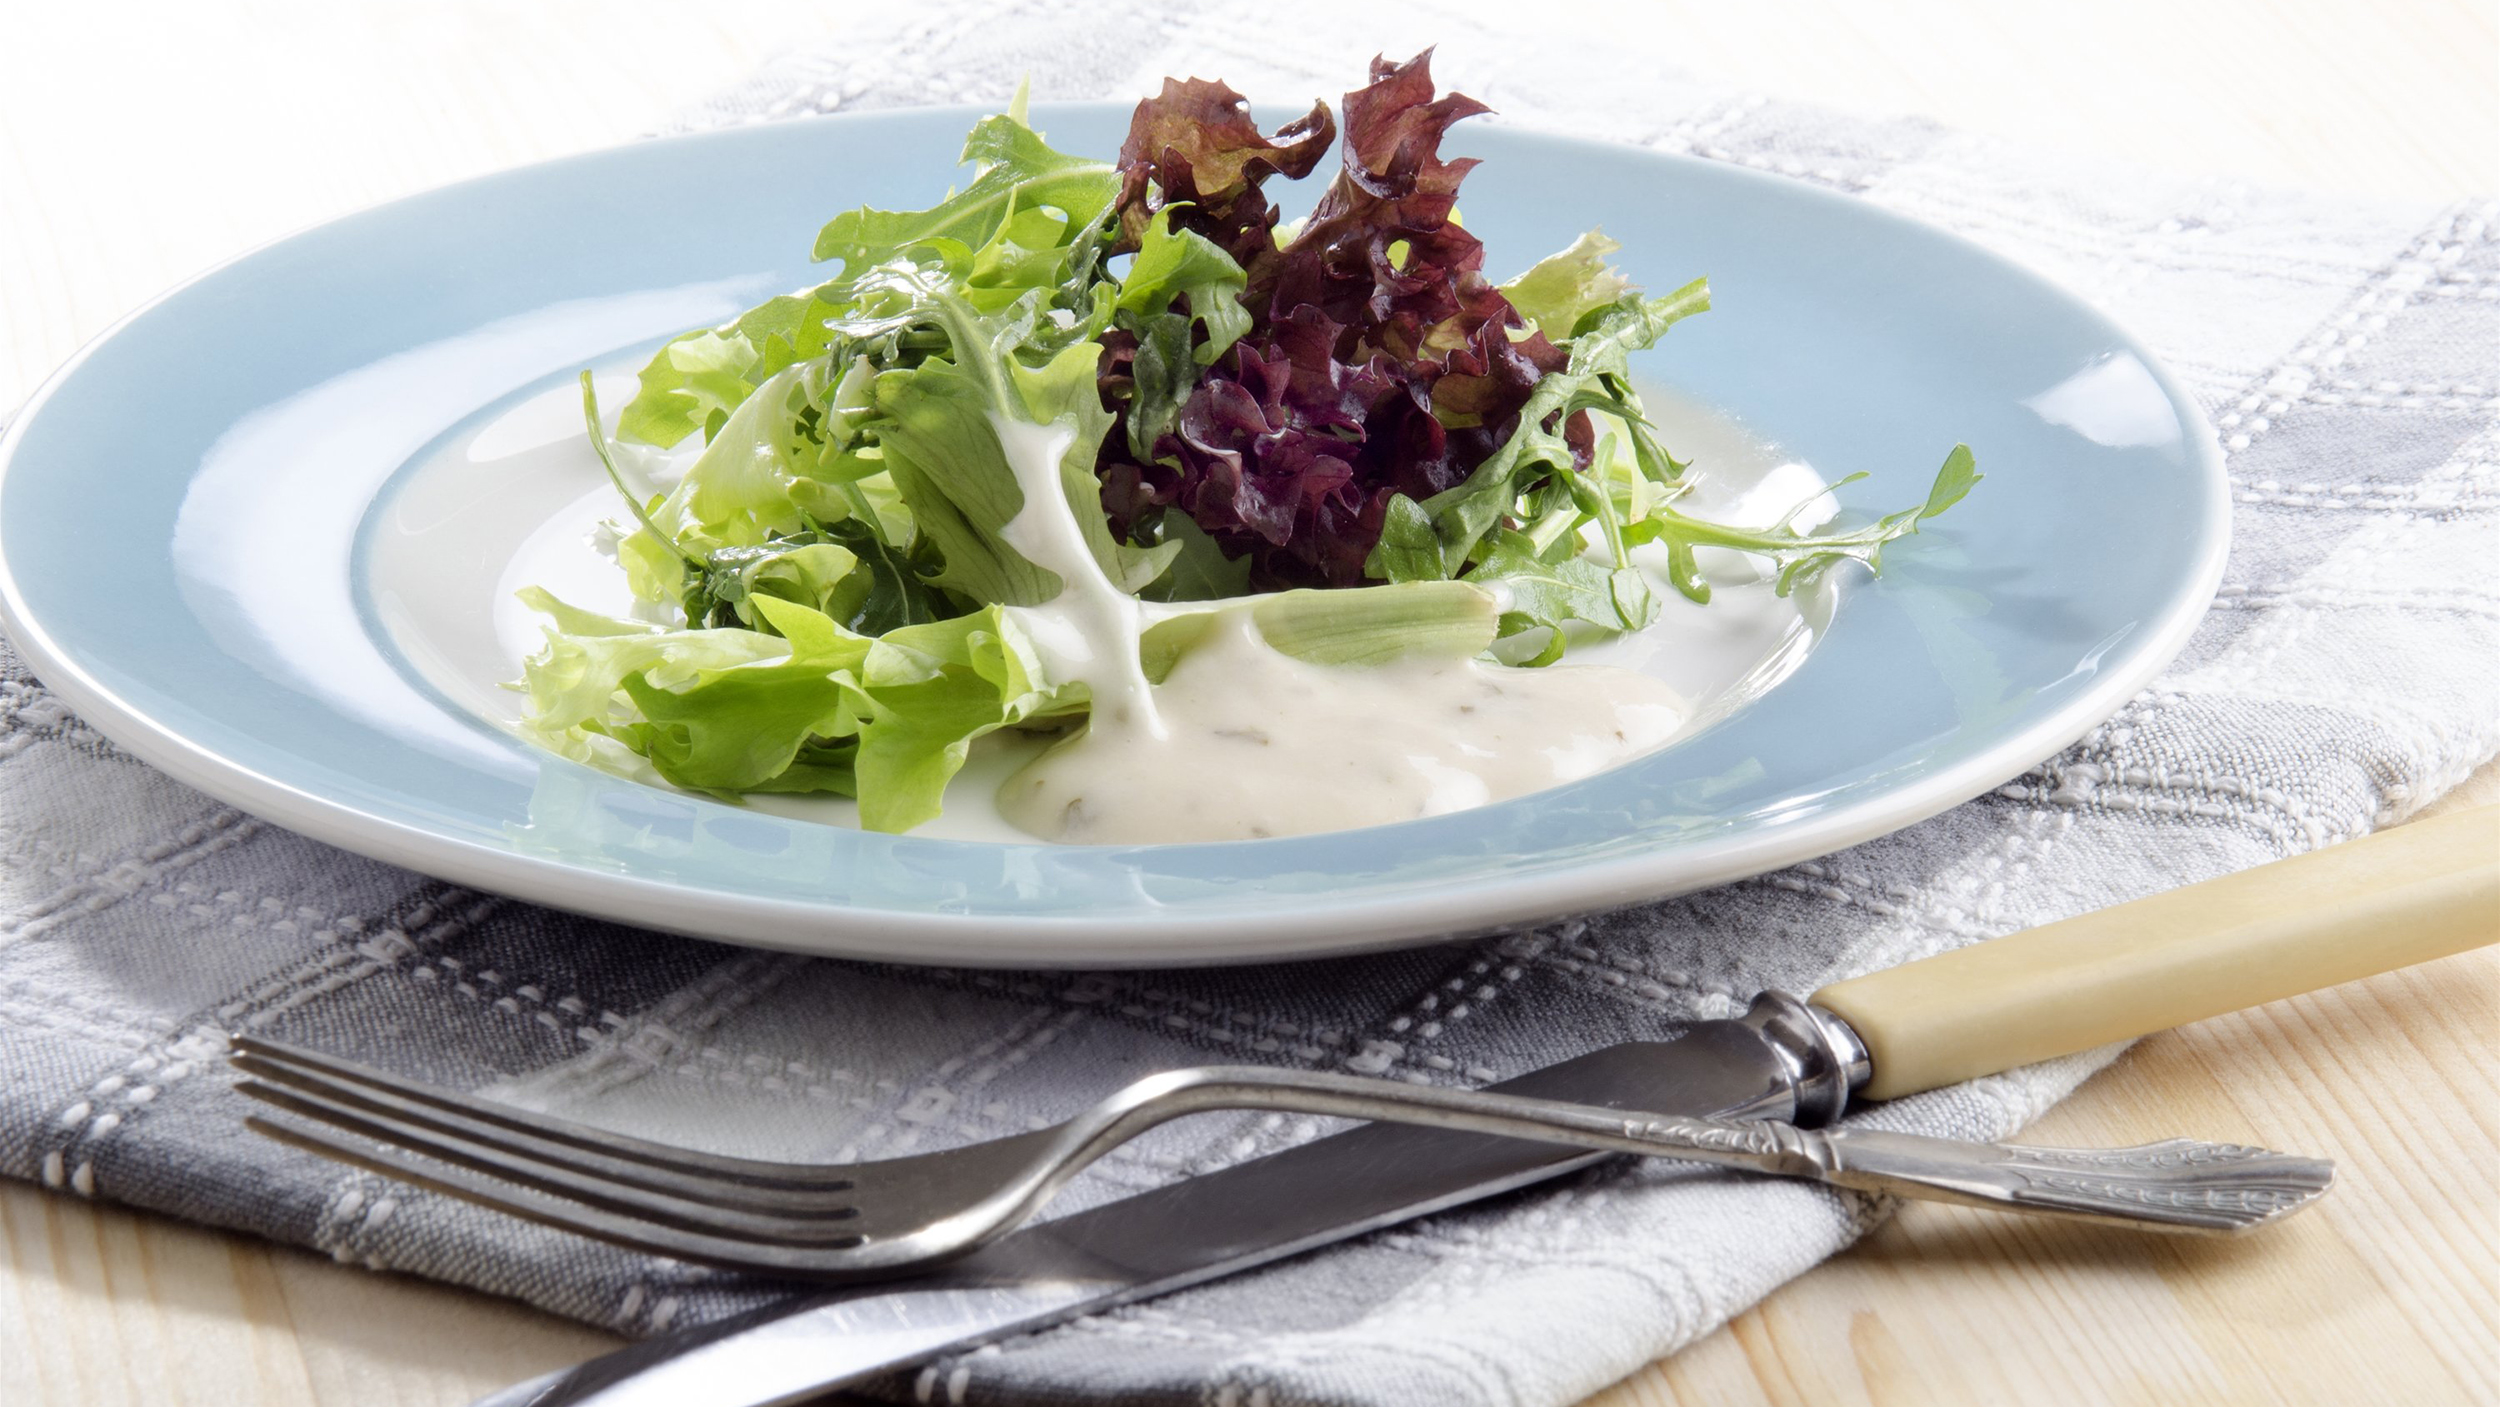 Farmhouse Rules Salad Recipes The Only Salad Dressing And Vinaigrette Recipe You 39ll Ever